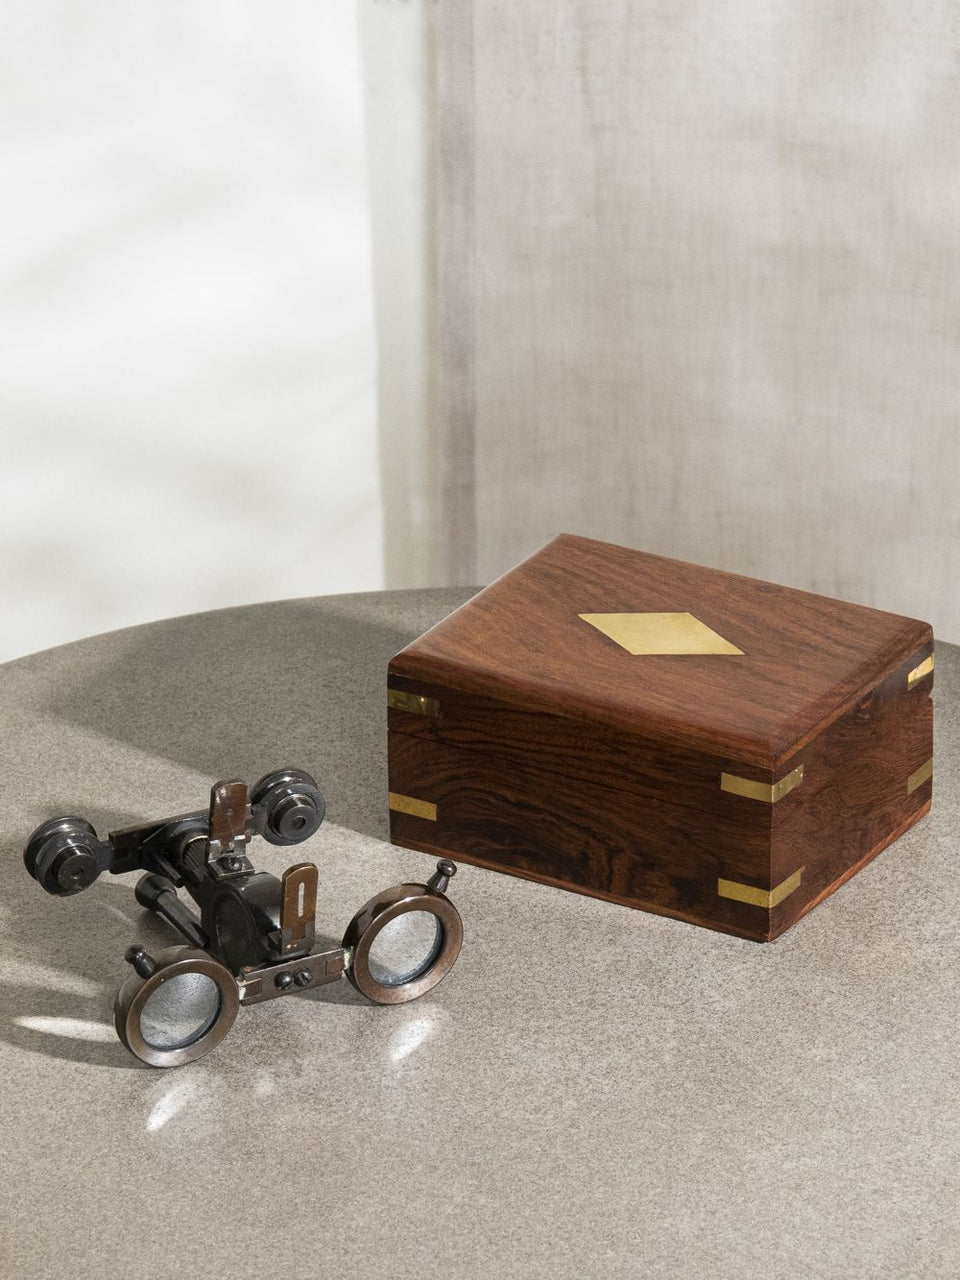 Wooden Box with Binoculars and Compass